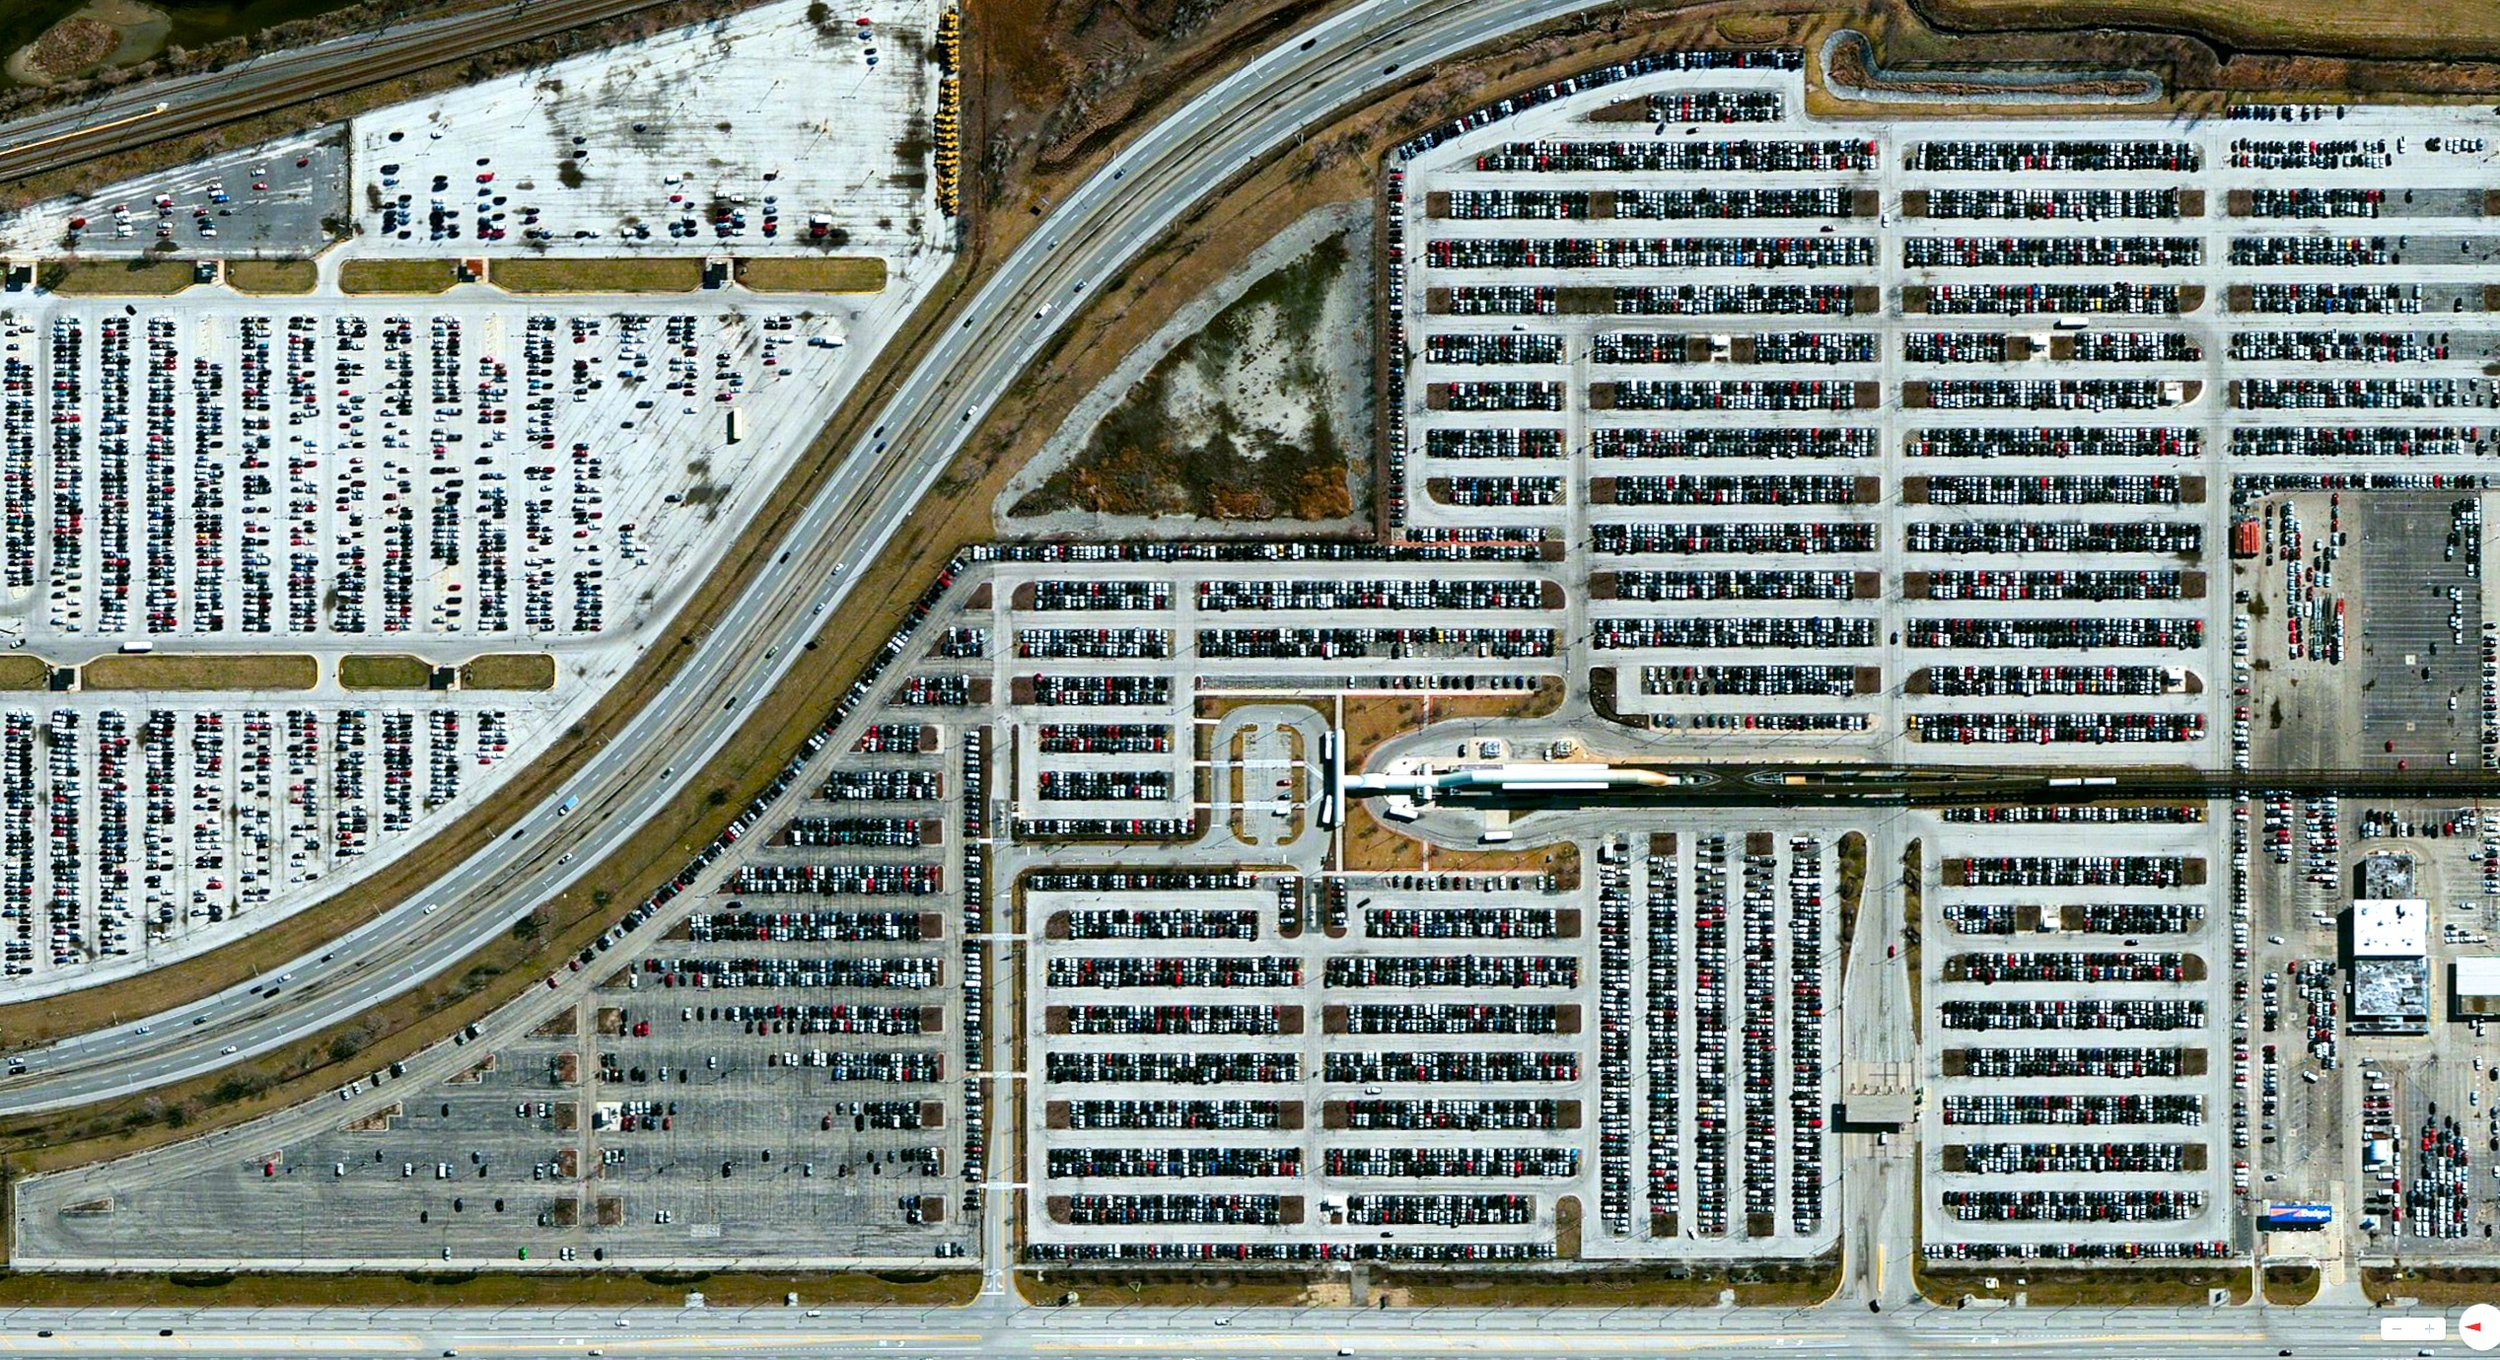 12/17/2013    Chicago O'Hare International Airport Parking Lot   Chicago, Illinois, USA   41°58′43″N 87°54′17″W